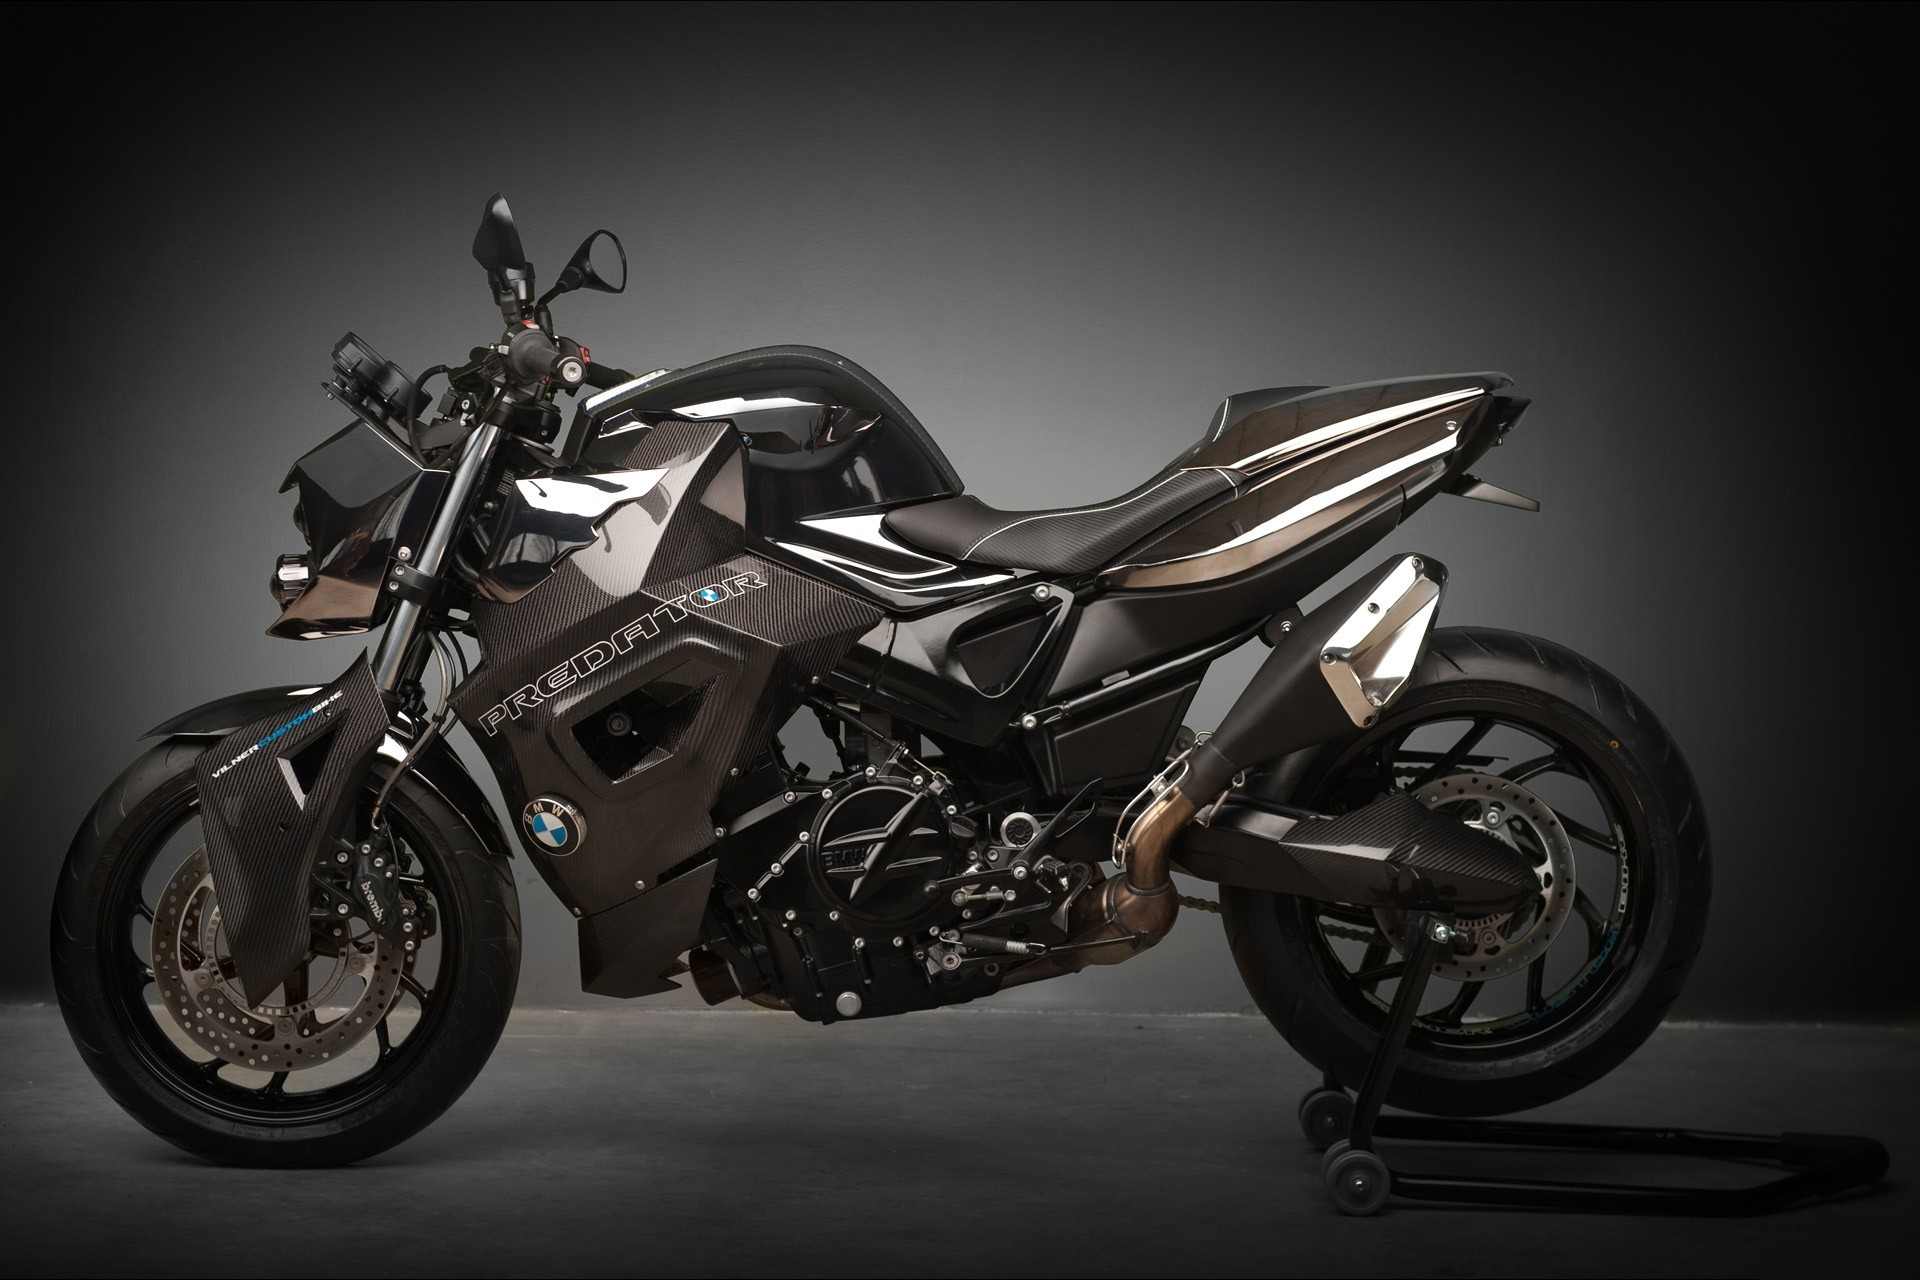 1 bmw f800r predator fonds d 39 cran hd arri re plans wallpaper abyss. Black Bedroom Furniture Sets. Home Design Ideas